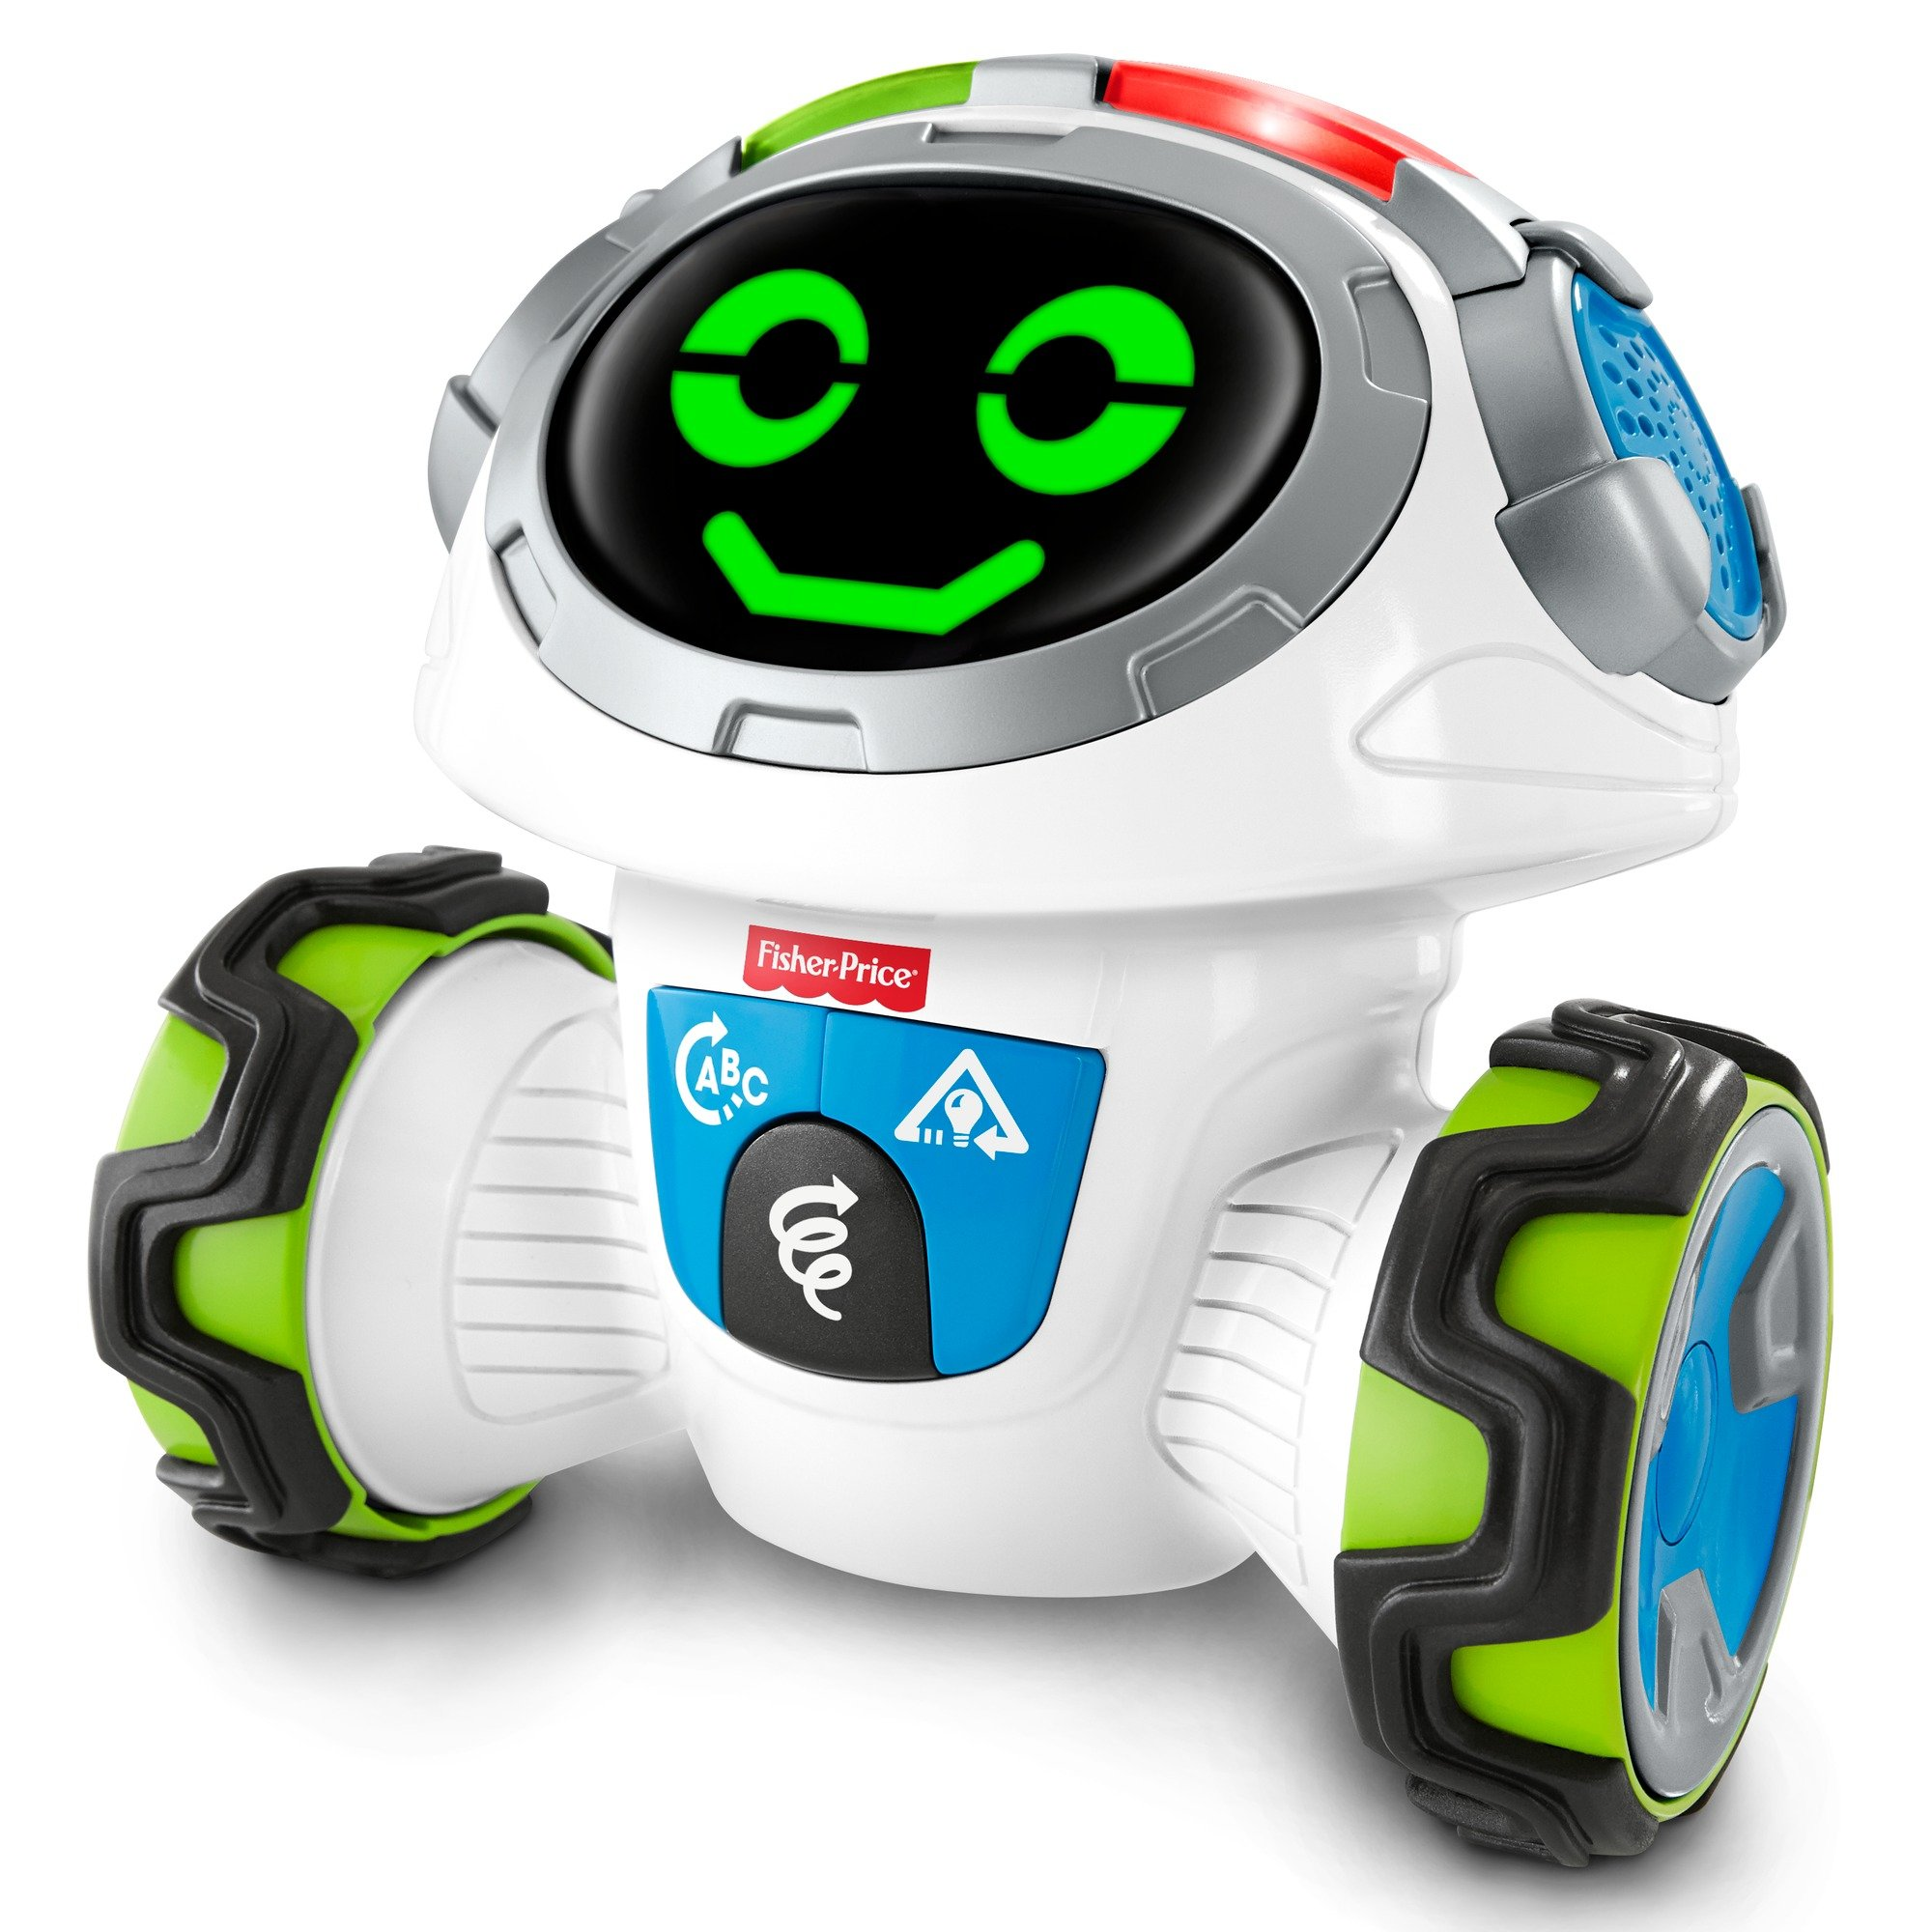 Fisher-Price Think & Learn Teach 'n Tag Movi by Fisher-Price